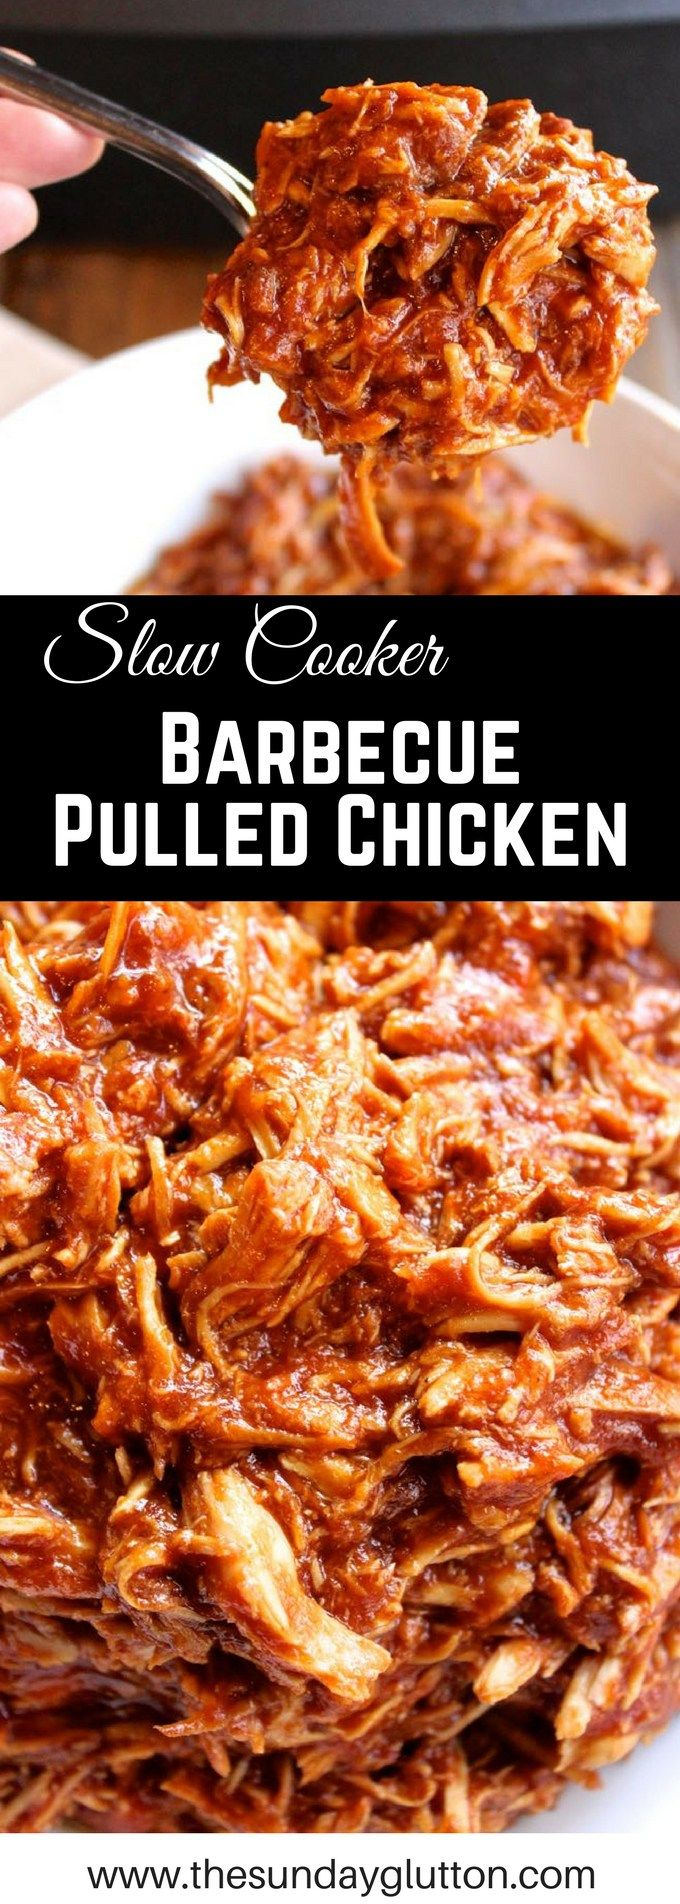 This Slow Cooker Pulled Barbecue Chicken is a true kitchen workhorse with just 3 simple ingredients and endless possibilities.